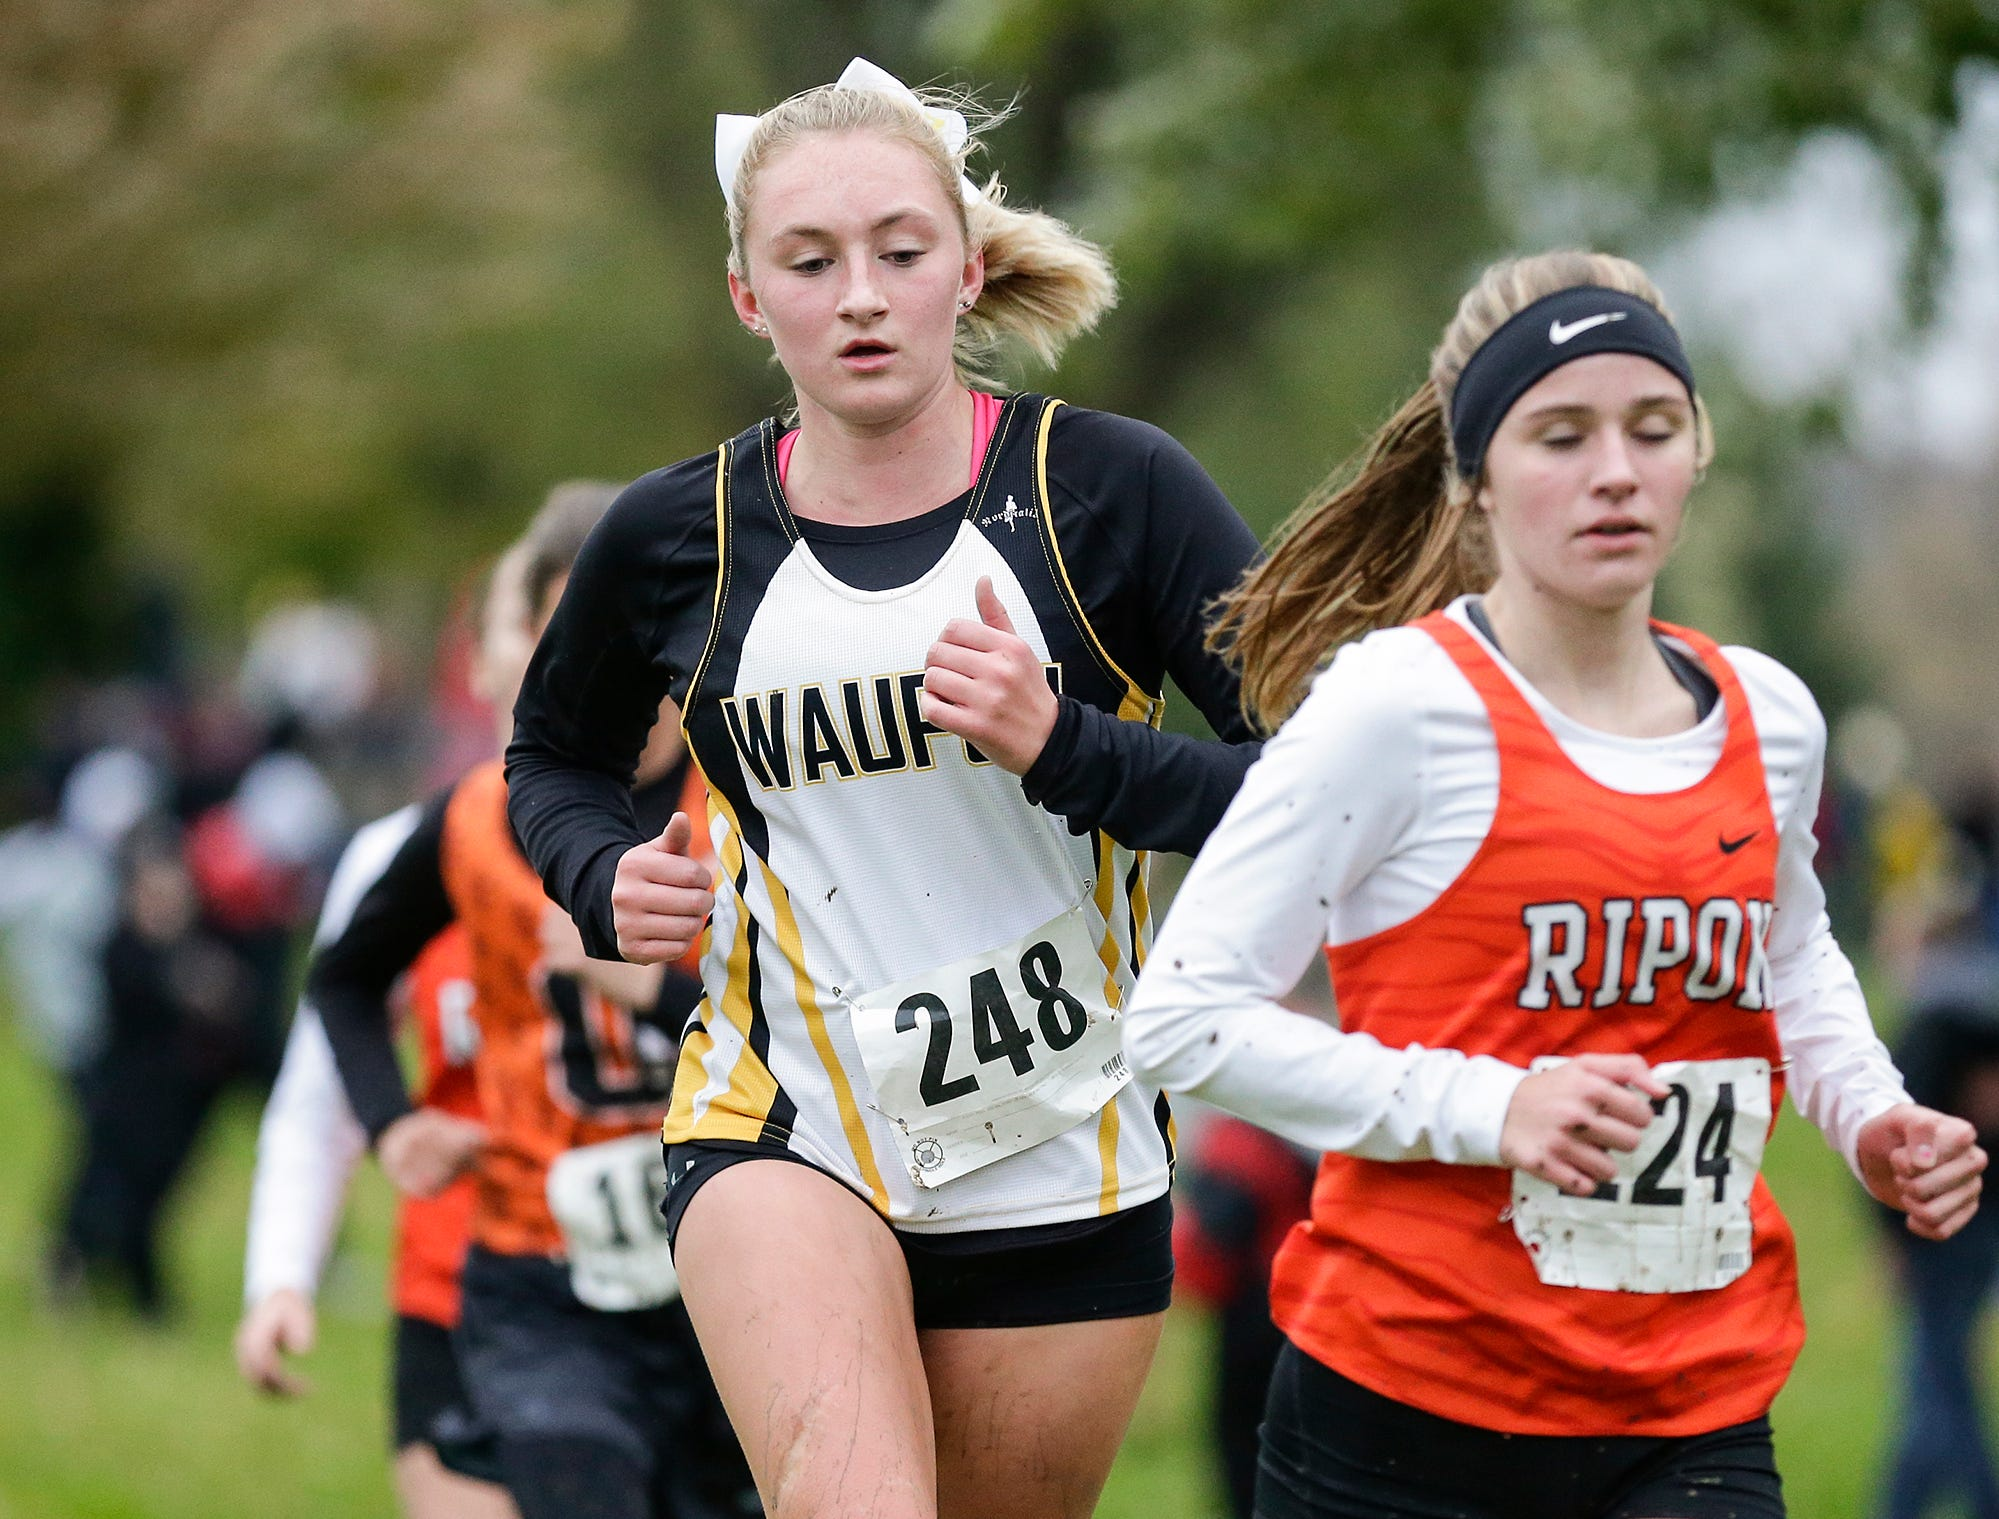 Waupun High School's Sarah Miller runs in the WIAA Division two Mayville sectional cross country meet at the Mayville golf course Friday, October 19, 2018. Doug Raflik/USA TODAY NETWORK-Wisconsin